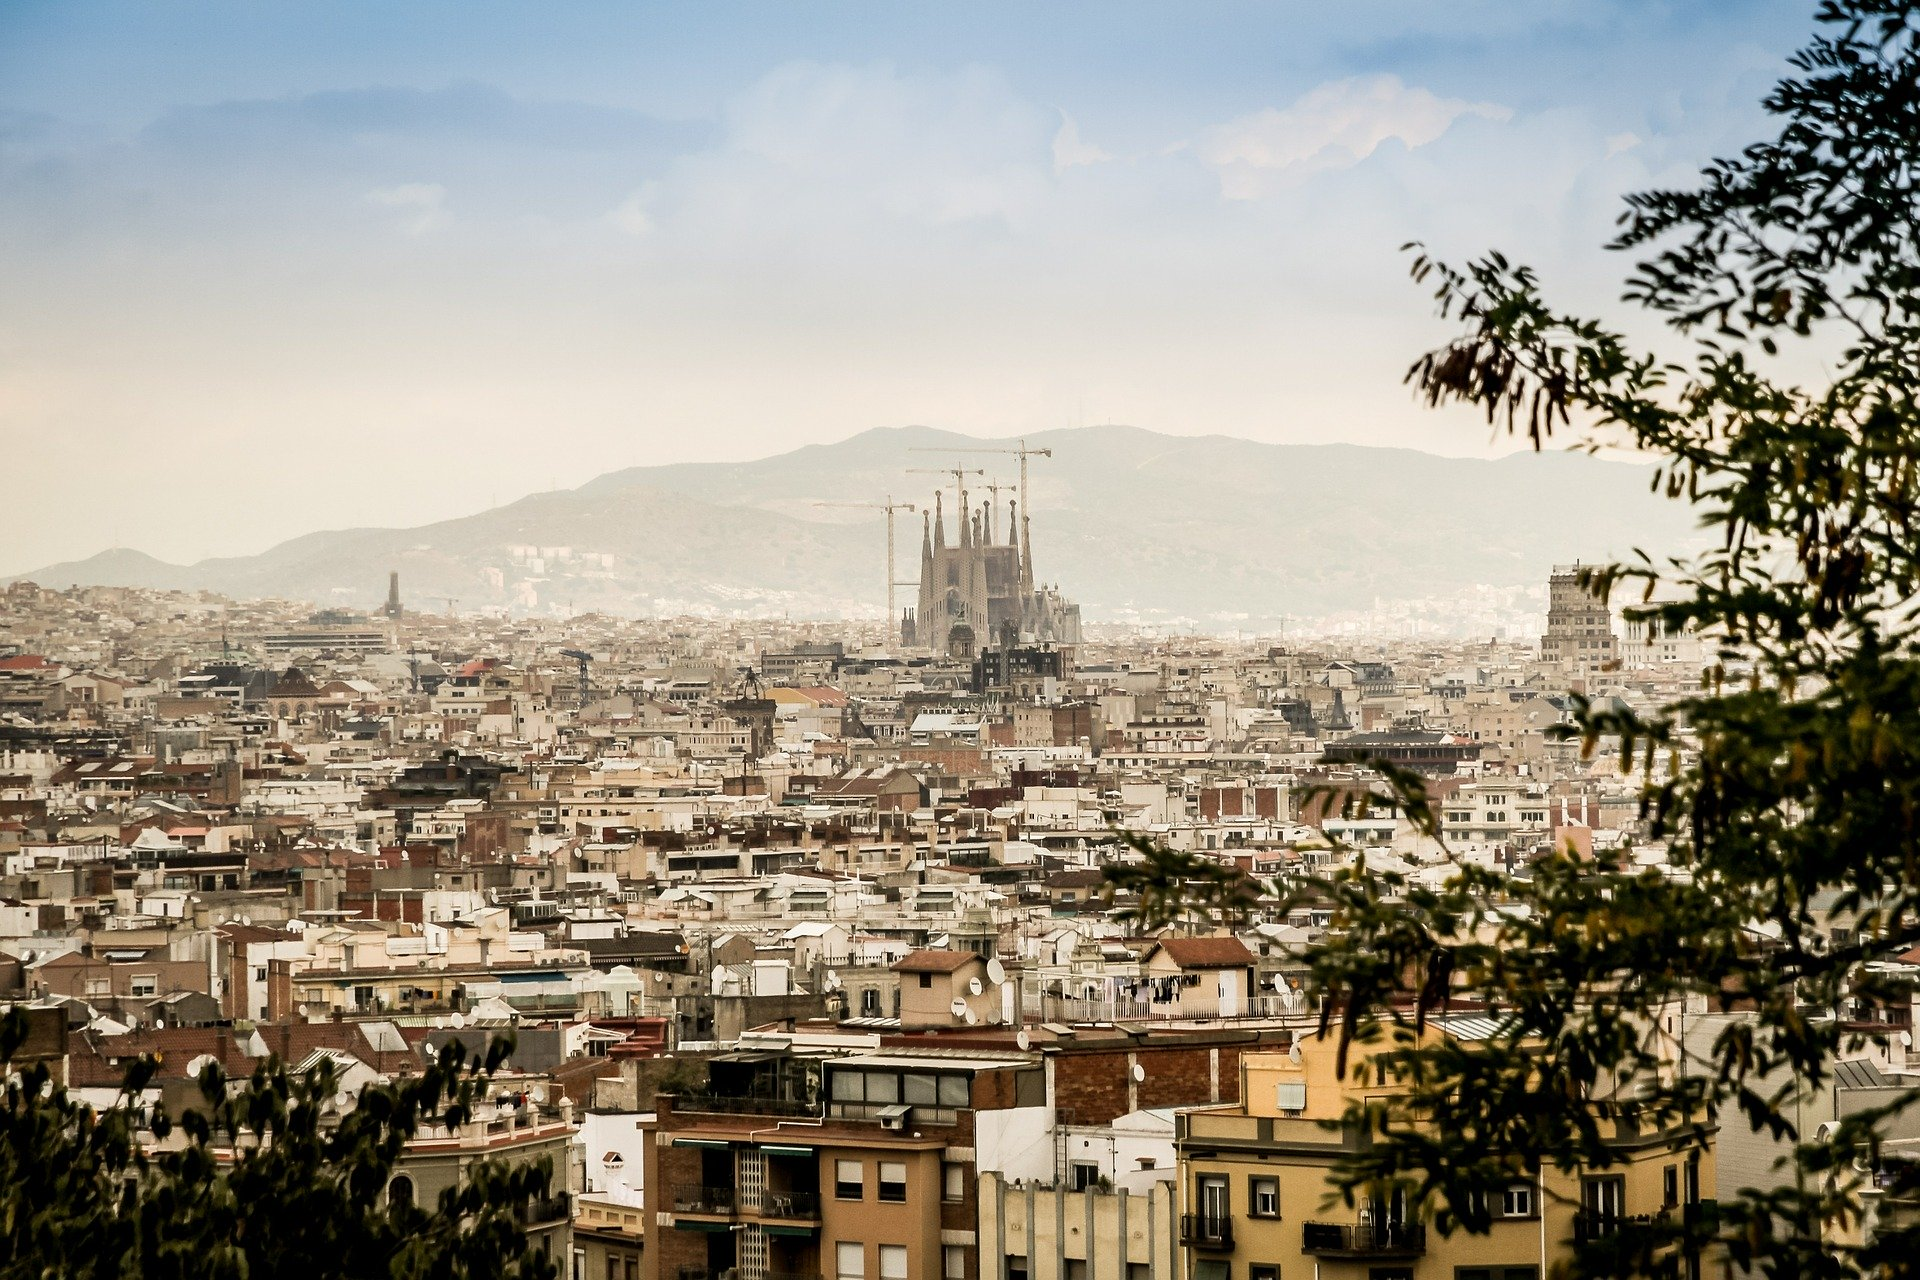 Air pollution responsible for half of childhood asthma cases in Barcelona - Air Quality News